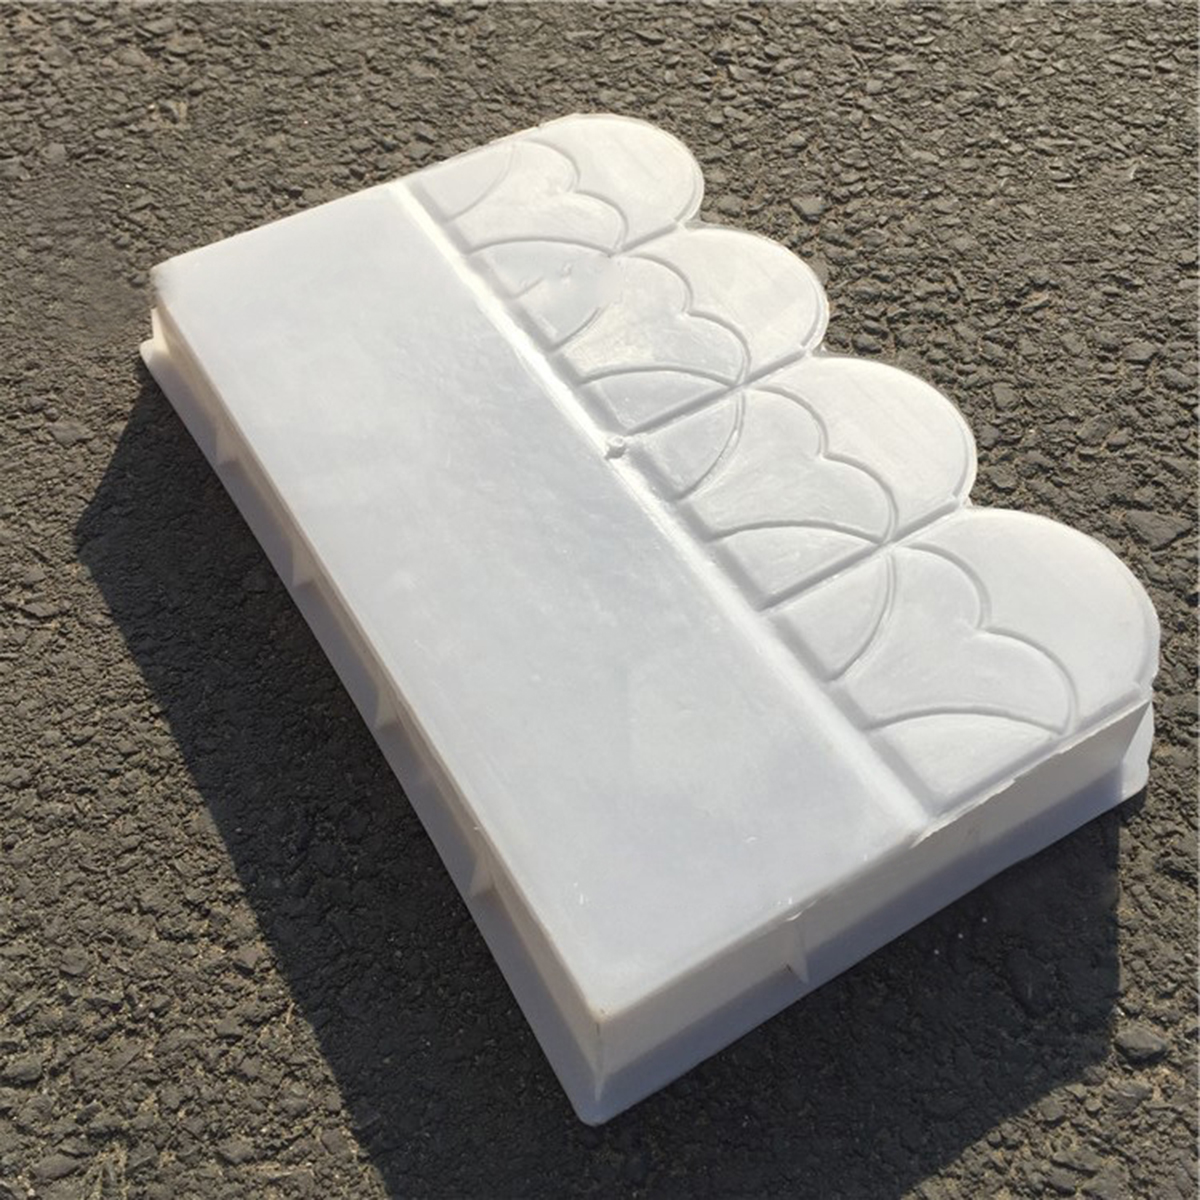 Fence Flower Mold Pool Courtyard Plastic Brick Tree Hole DIY Concrete Mold Pathing Decor Paving Mold for Garden Building SupplyFence Flower Mold Pool Courtyard Plastic Brick Tree Hole DIY Concrete Mold Pathing Decor Paving Mold for Garden Building Supply